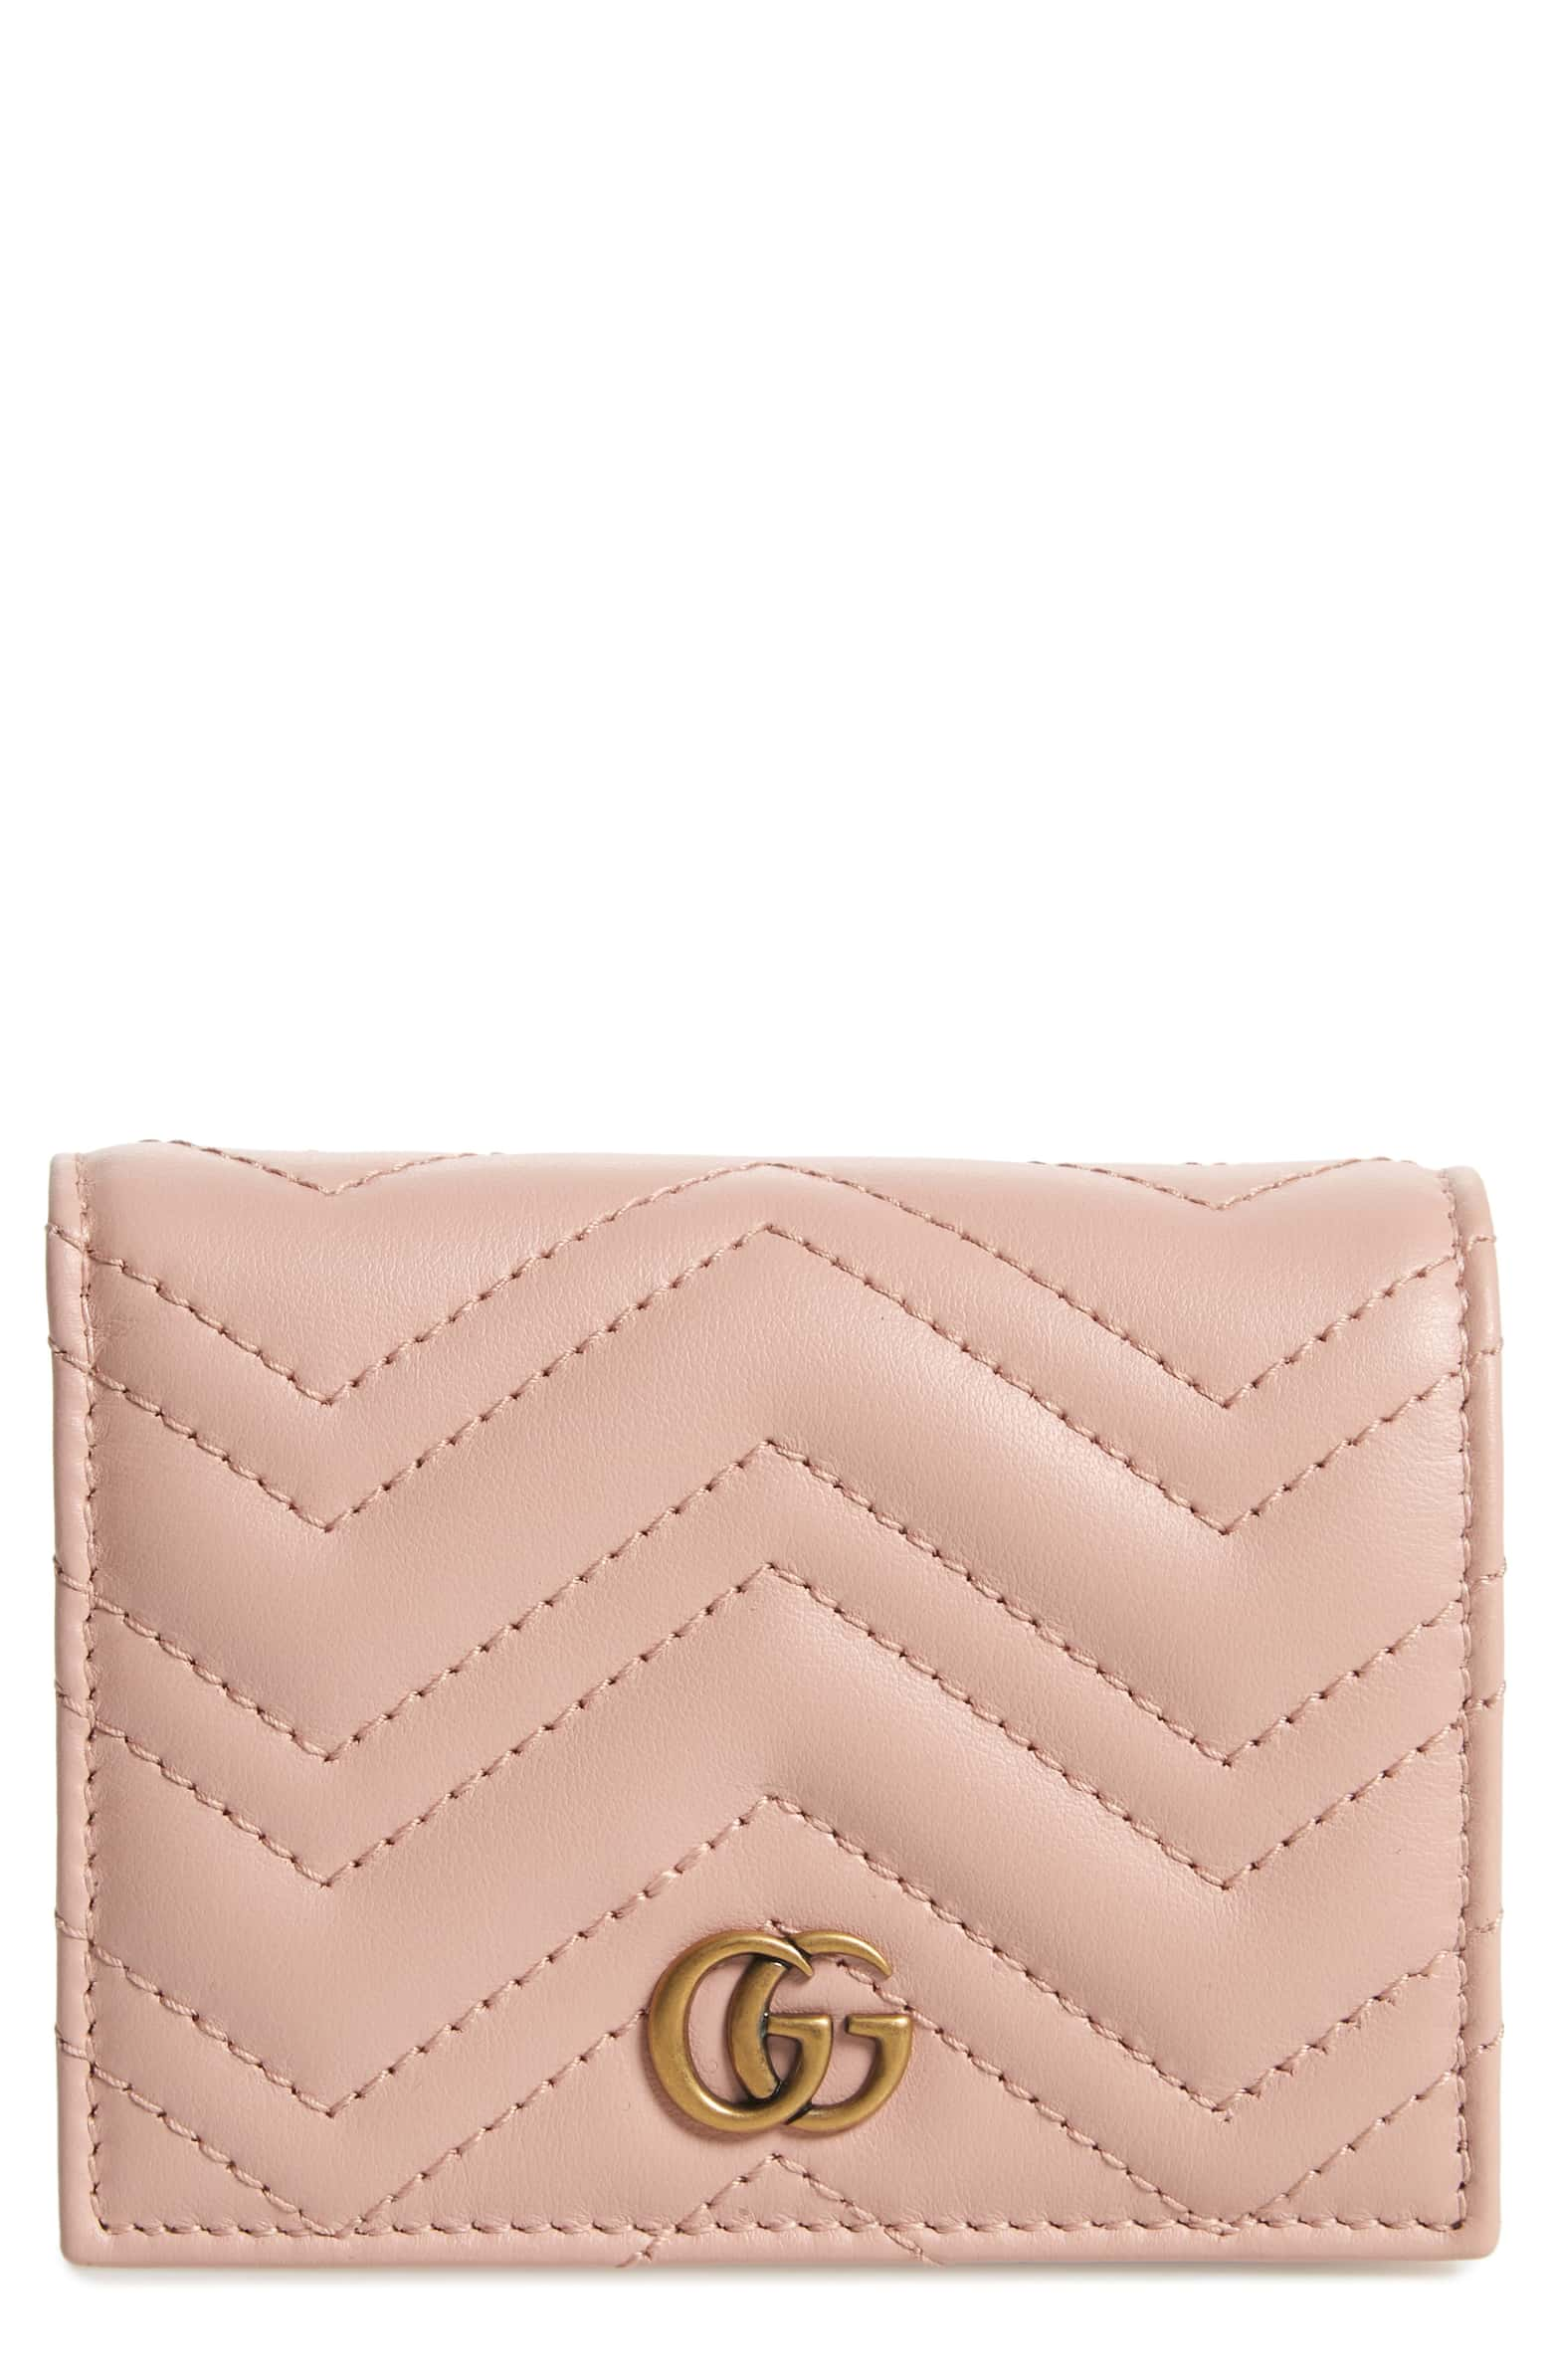 gucci blush leather wallet.jpg